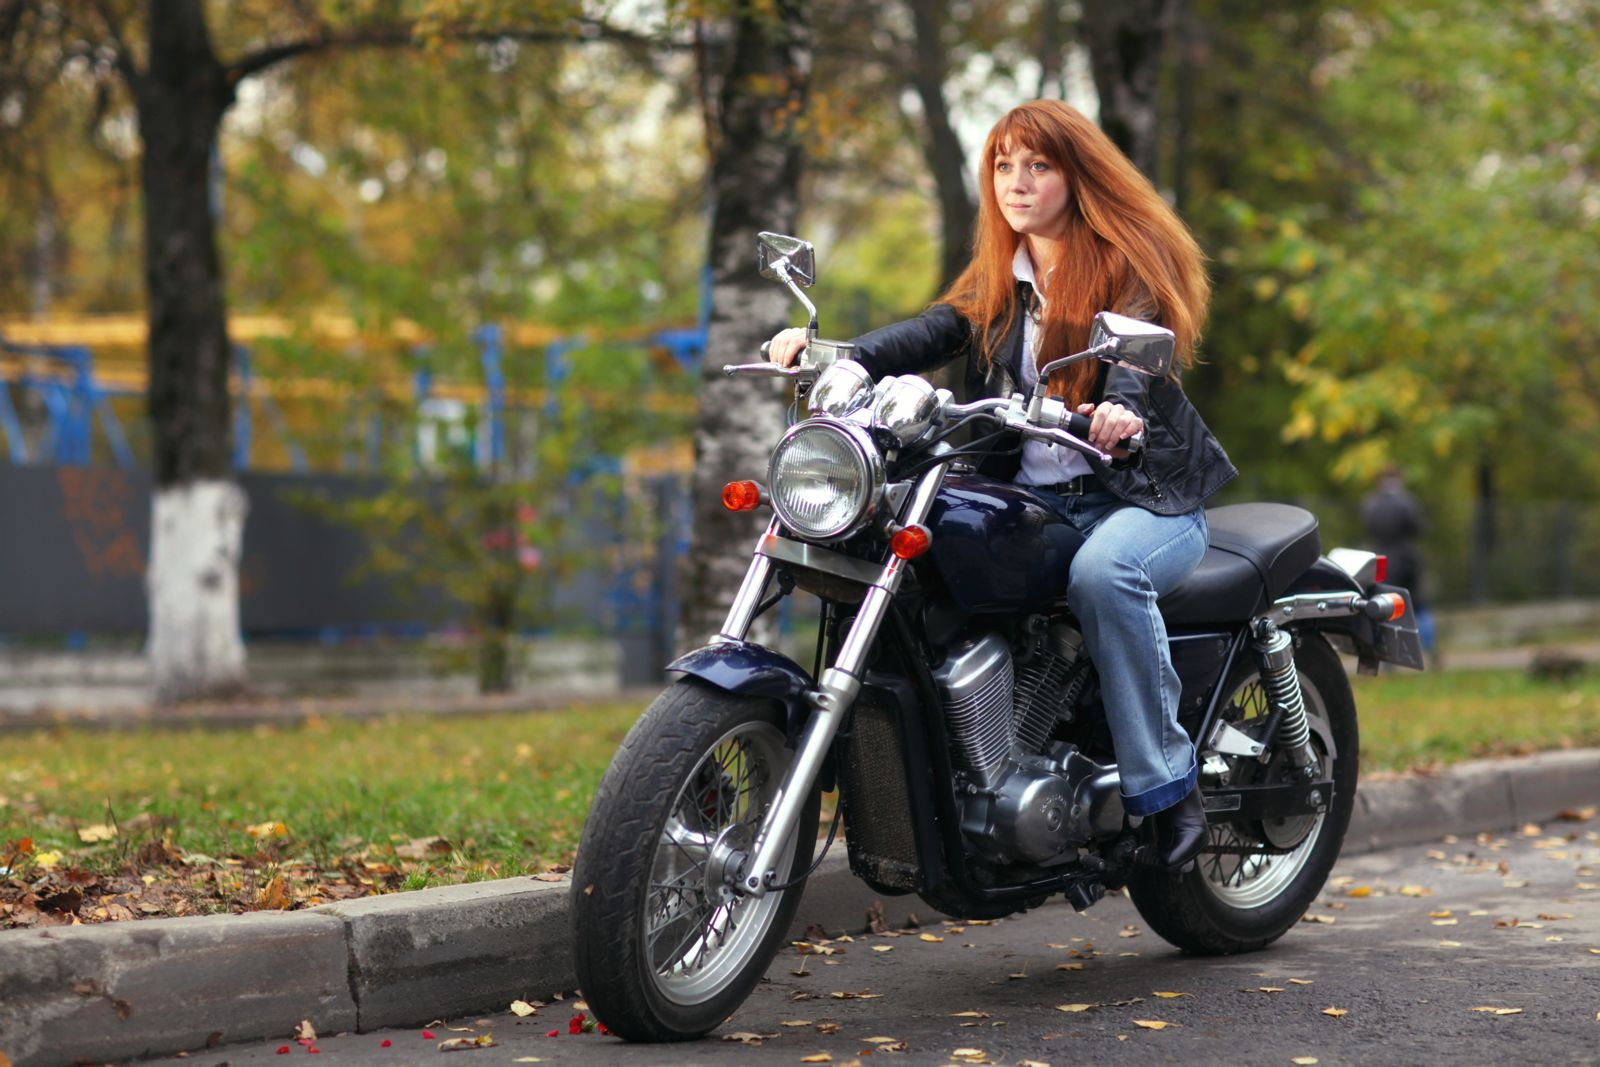 May 6 is international female ride day.